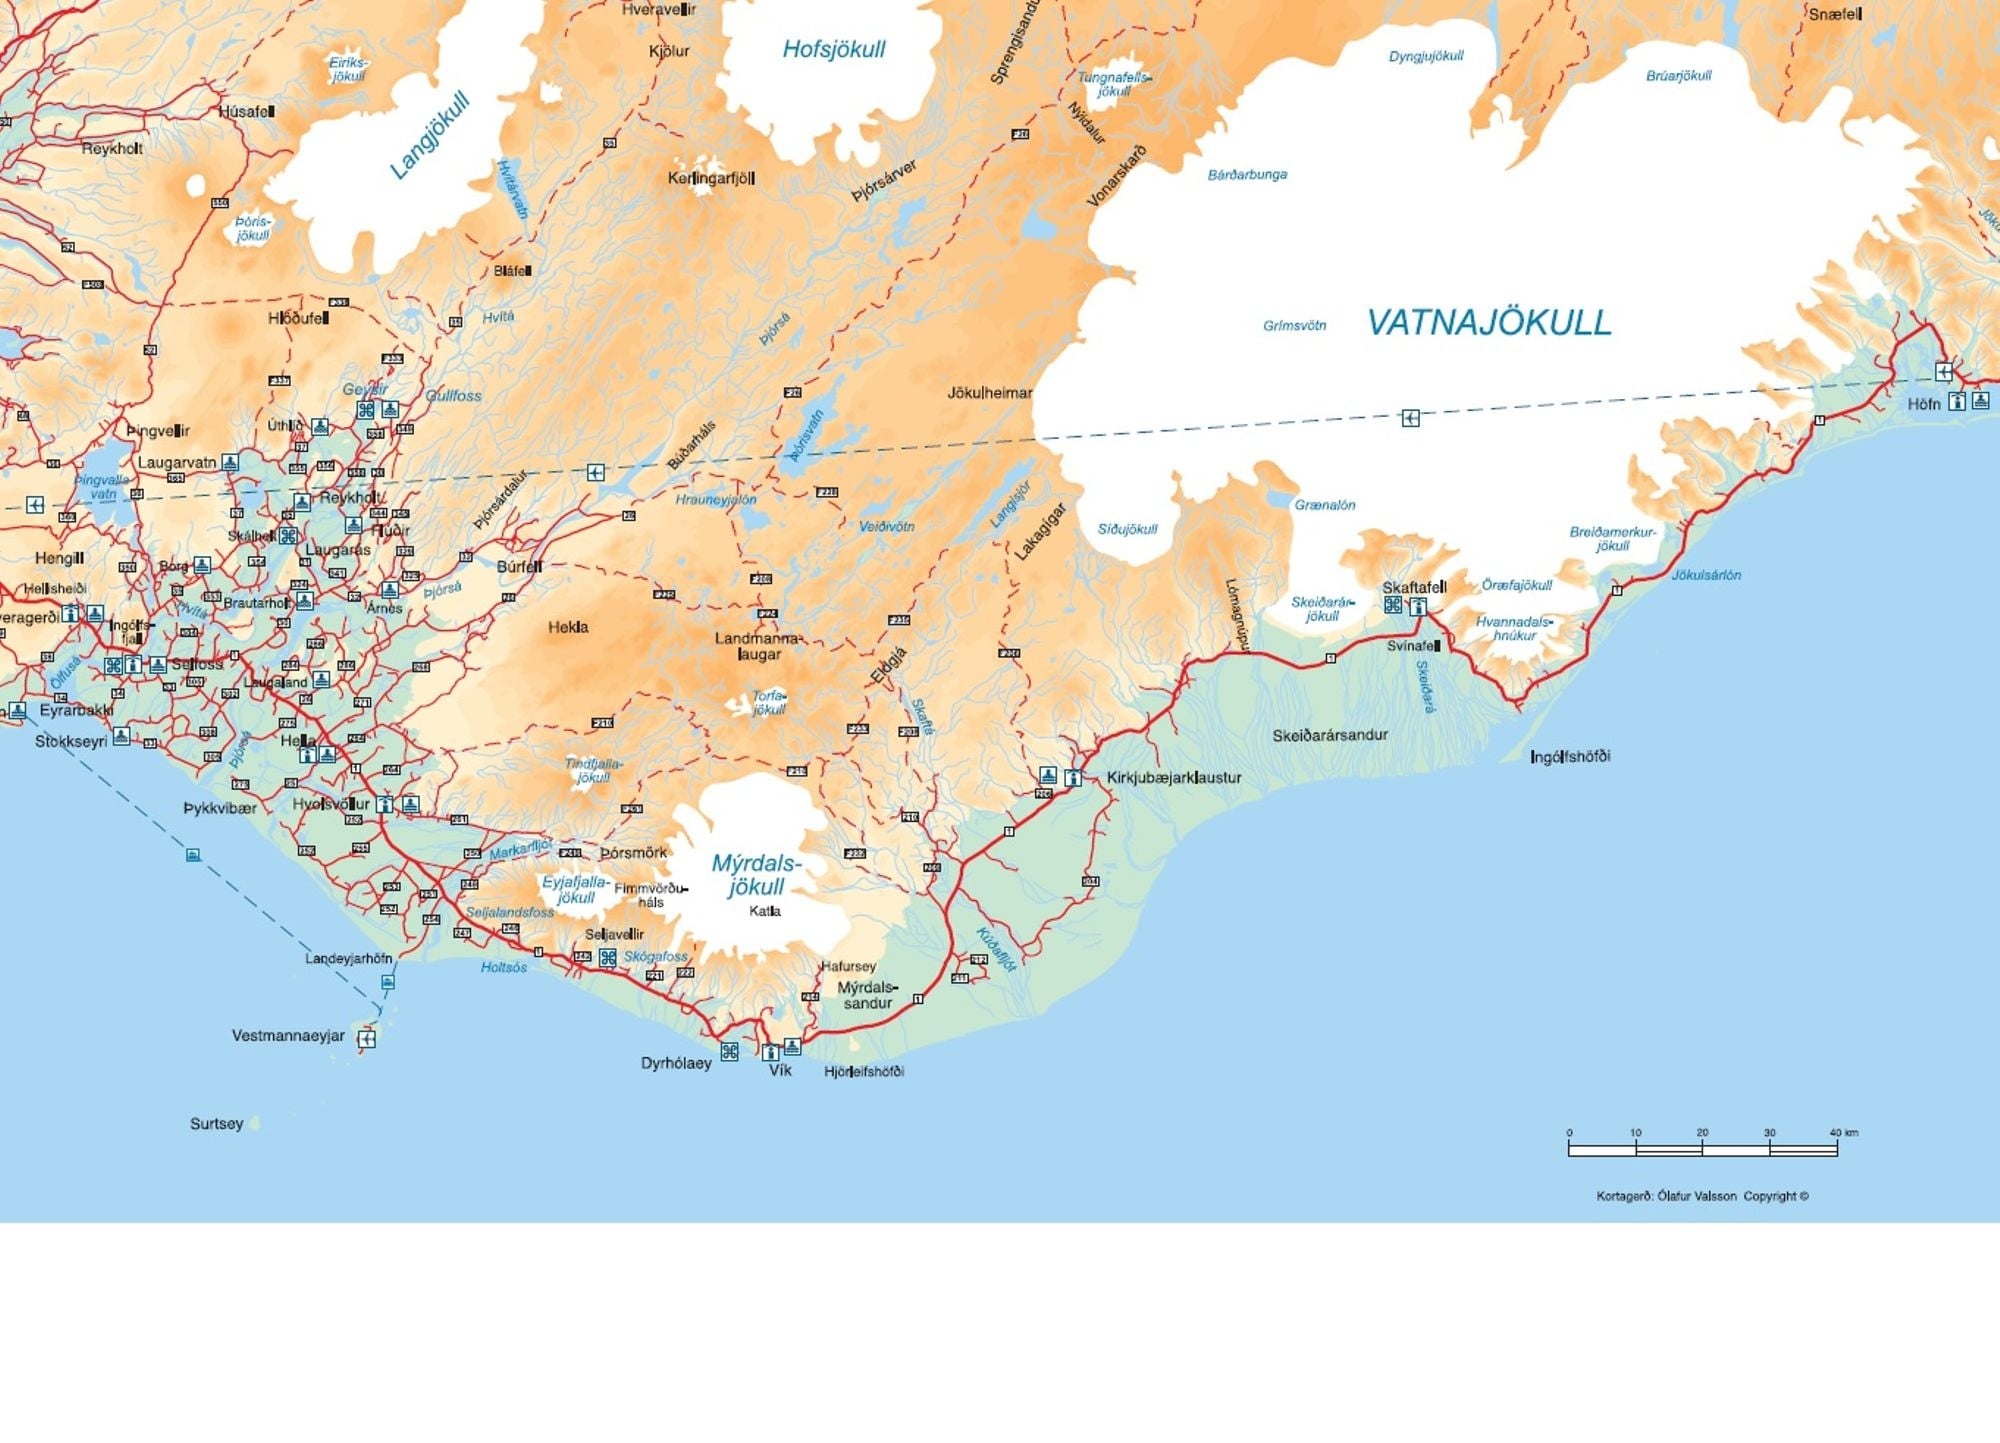 South Iceland – Map Of Iceland Tourist Attractions